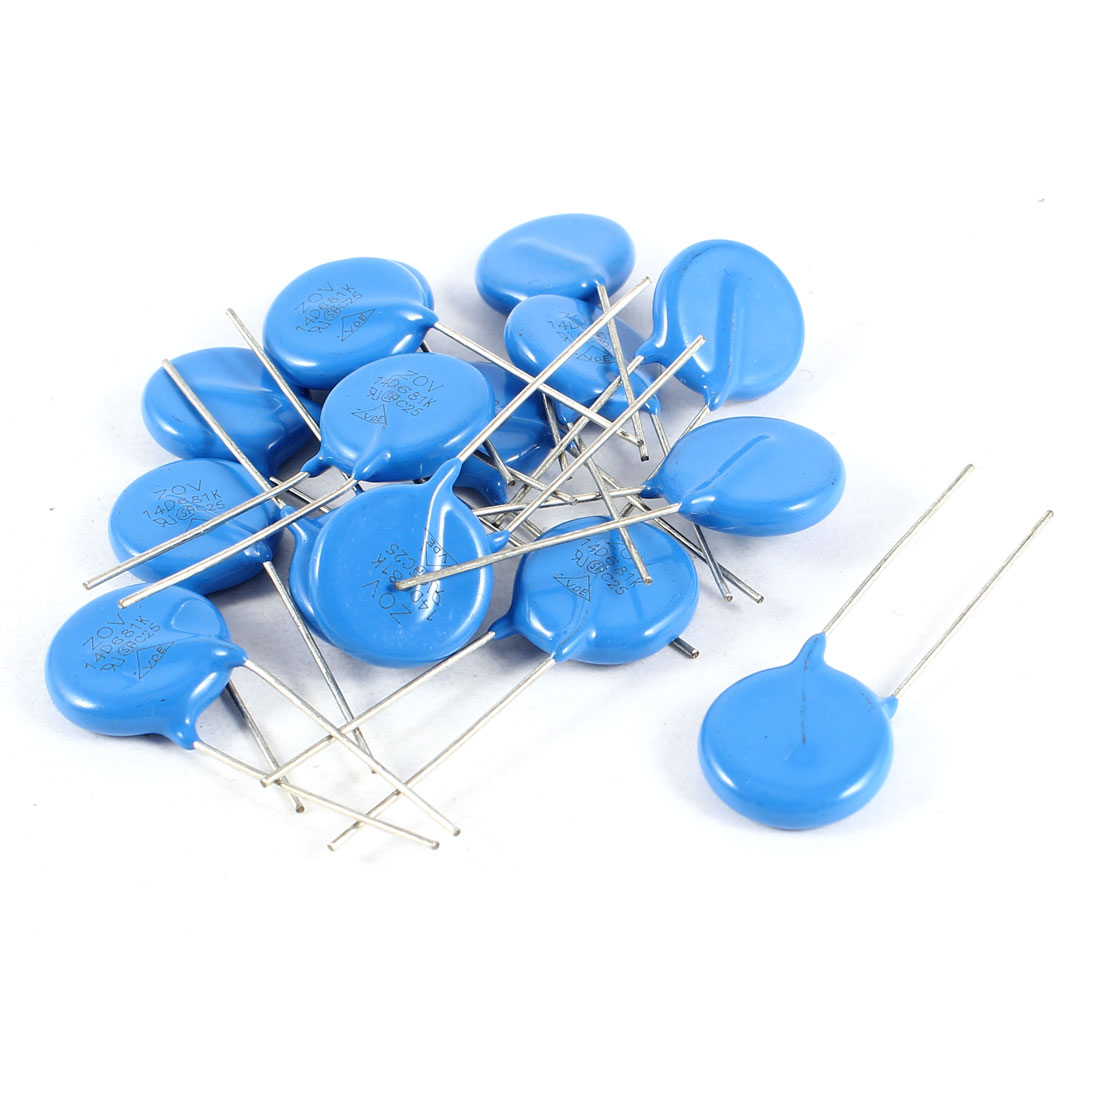 15 Pcs Radial Lead Voltage Dependent Resistor Varistors 680V 14D681K